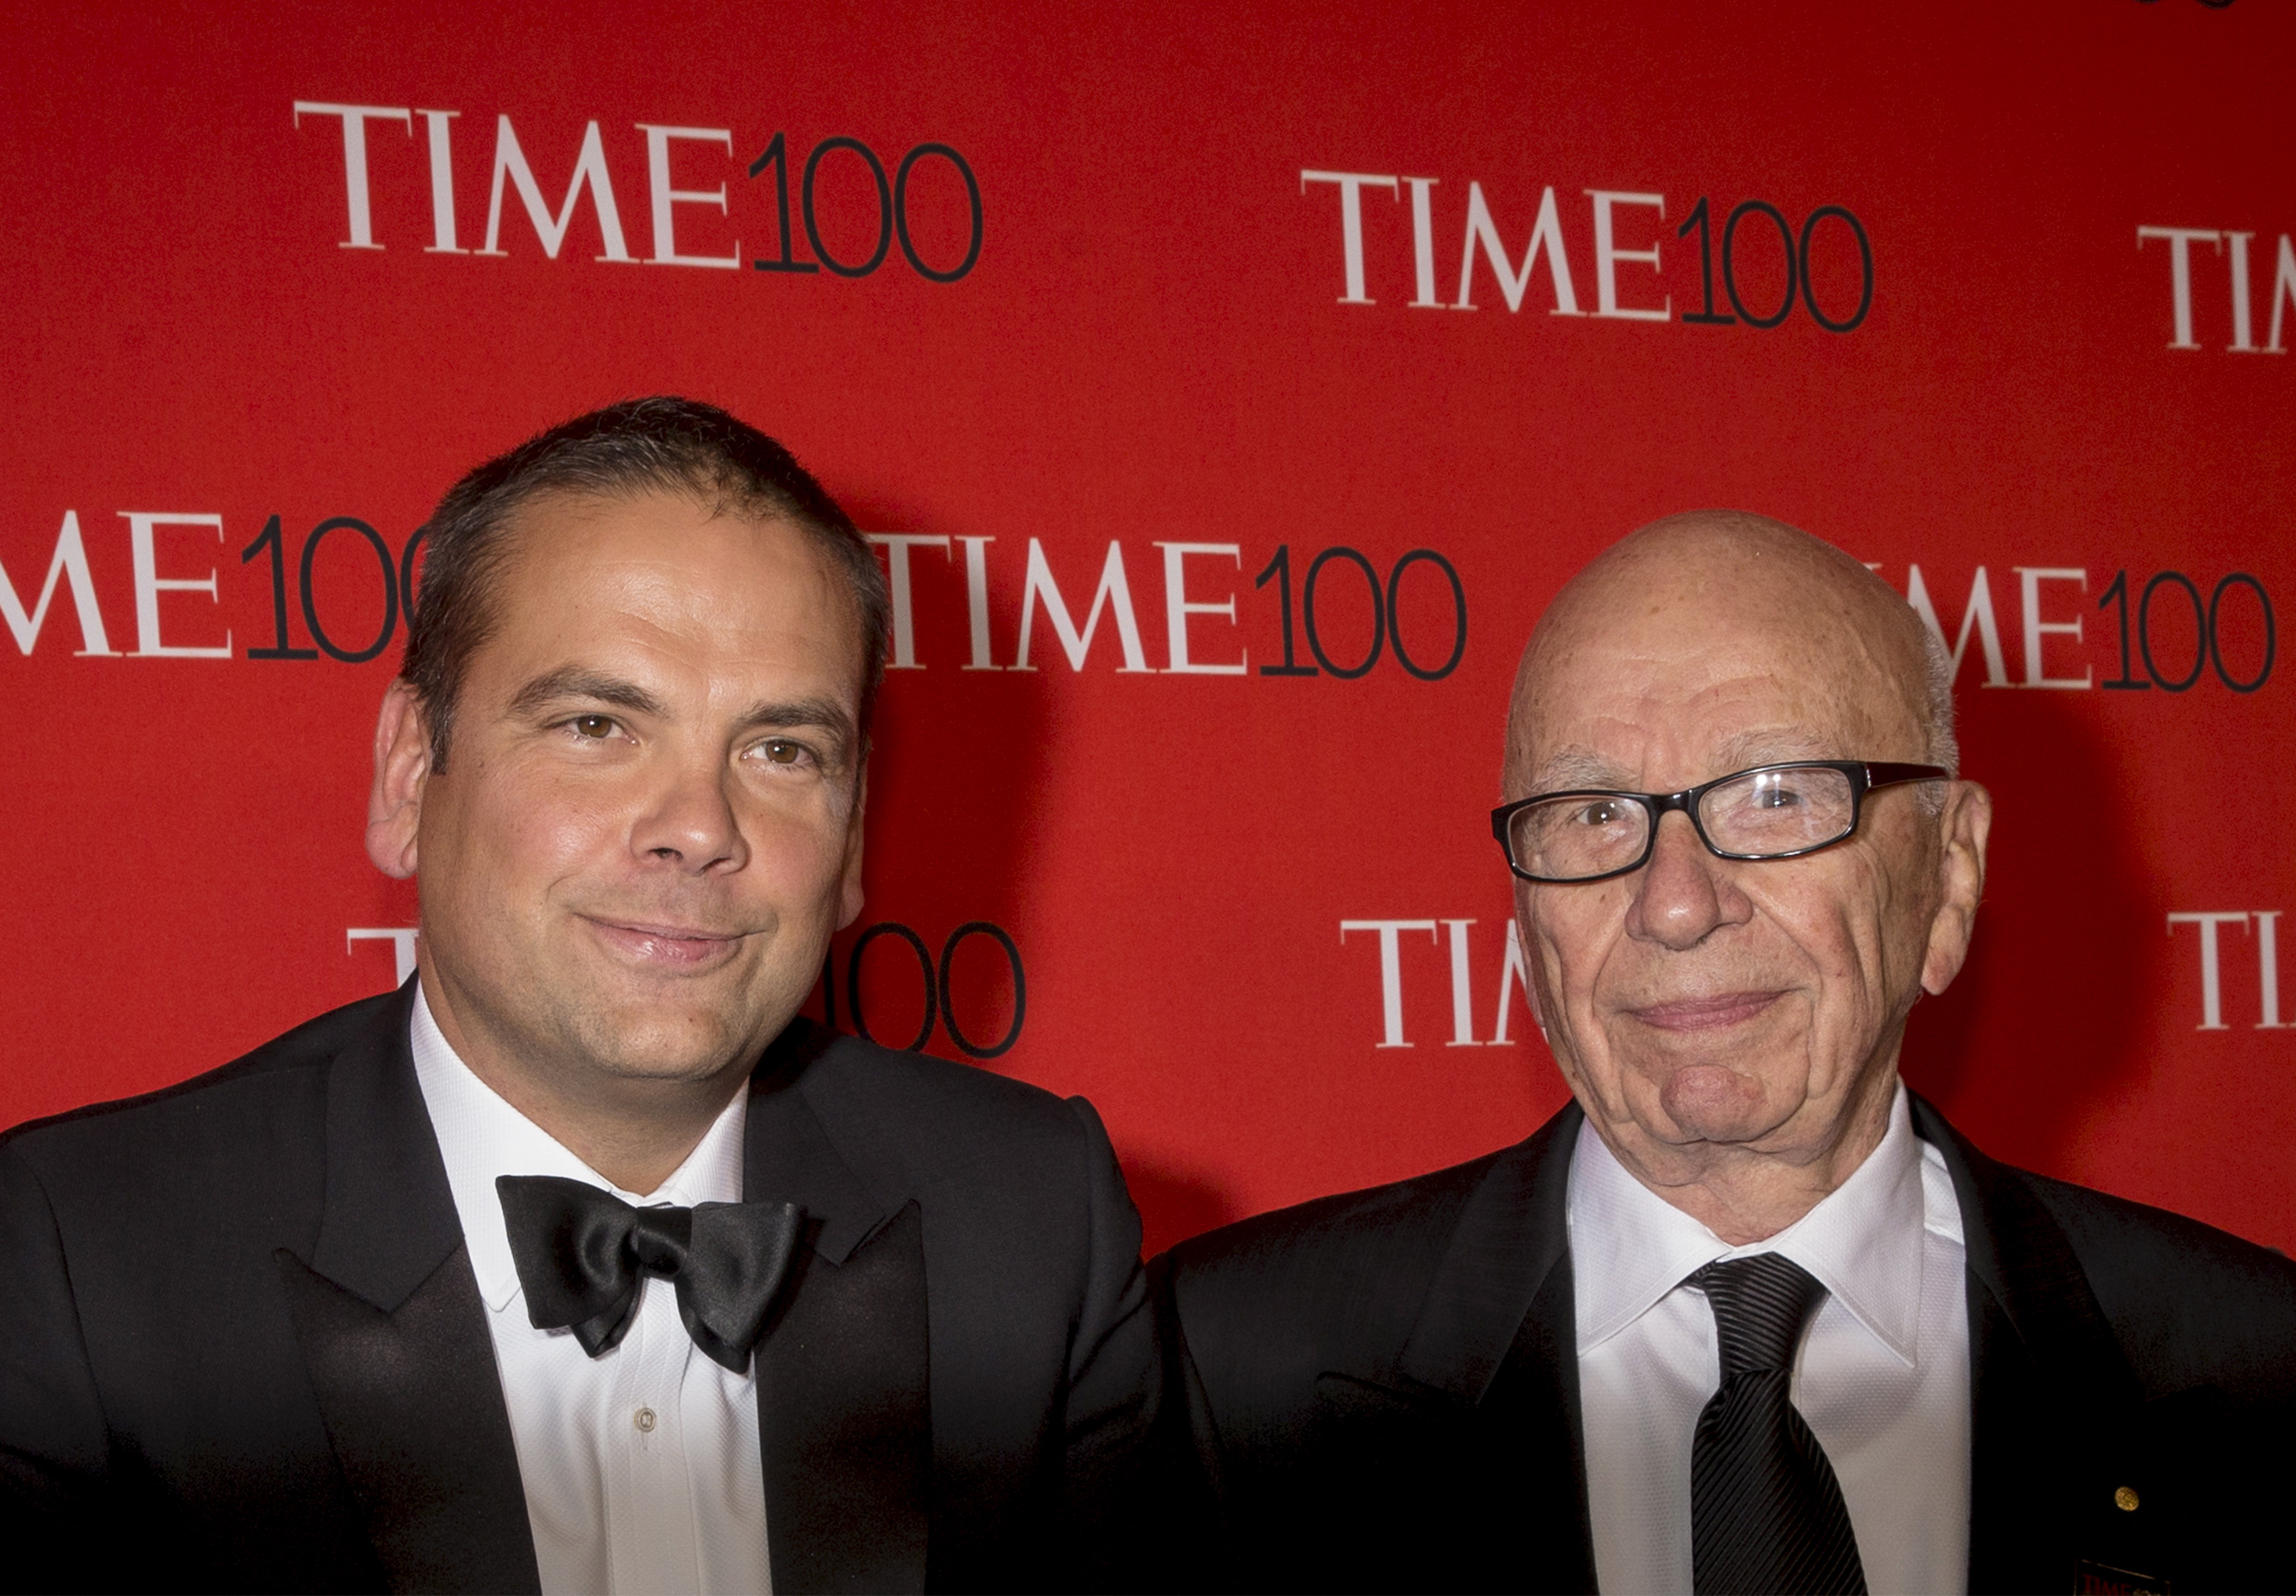 Rupert Murdoch (right) and Lachlan Murdoch arrive for the TIME 100 Gala in New York April 21, 2015.